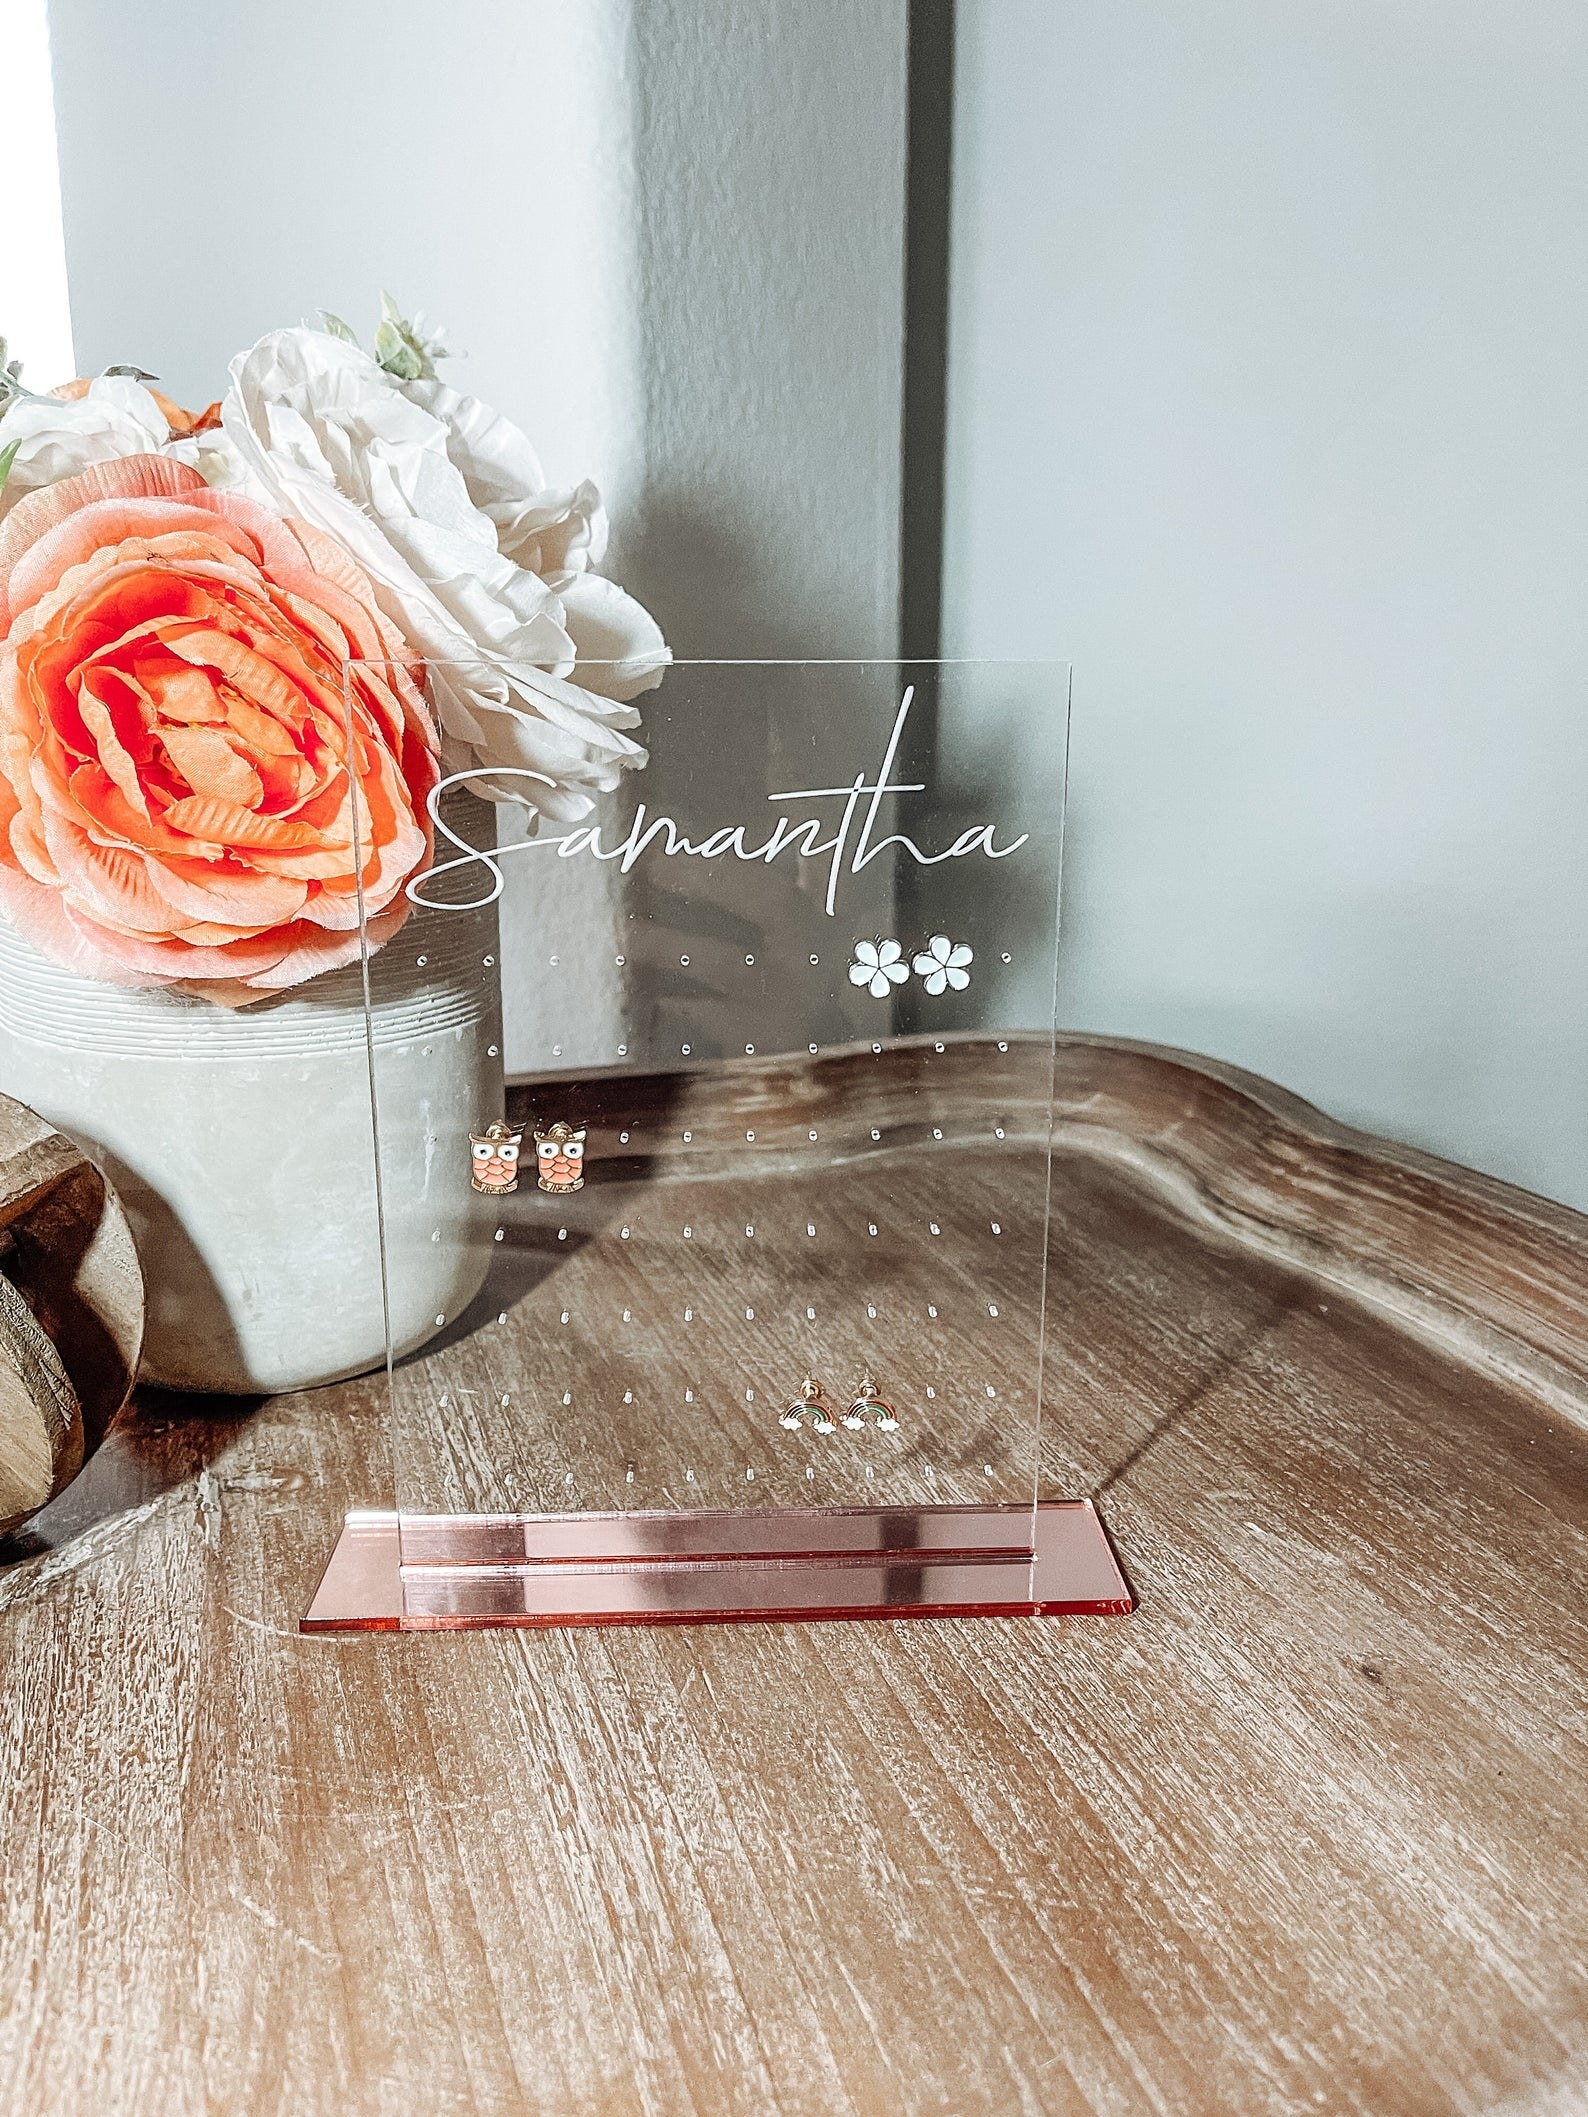 Personalized earring stand placed on table